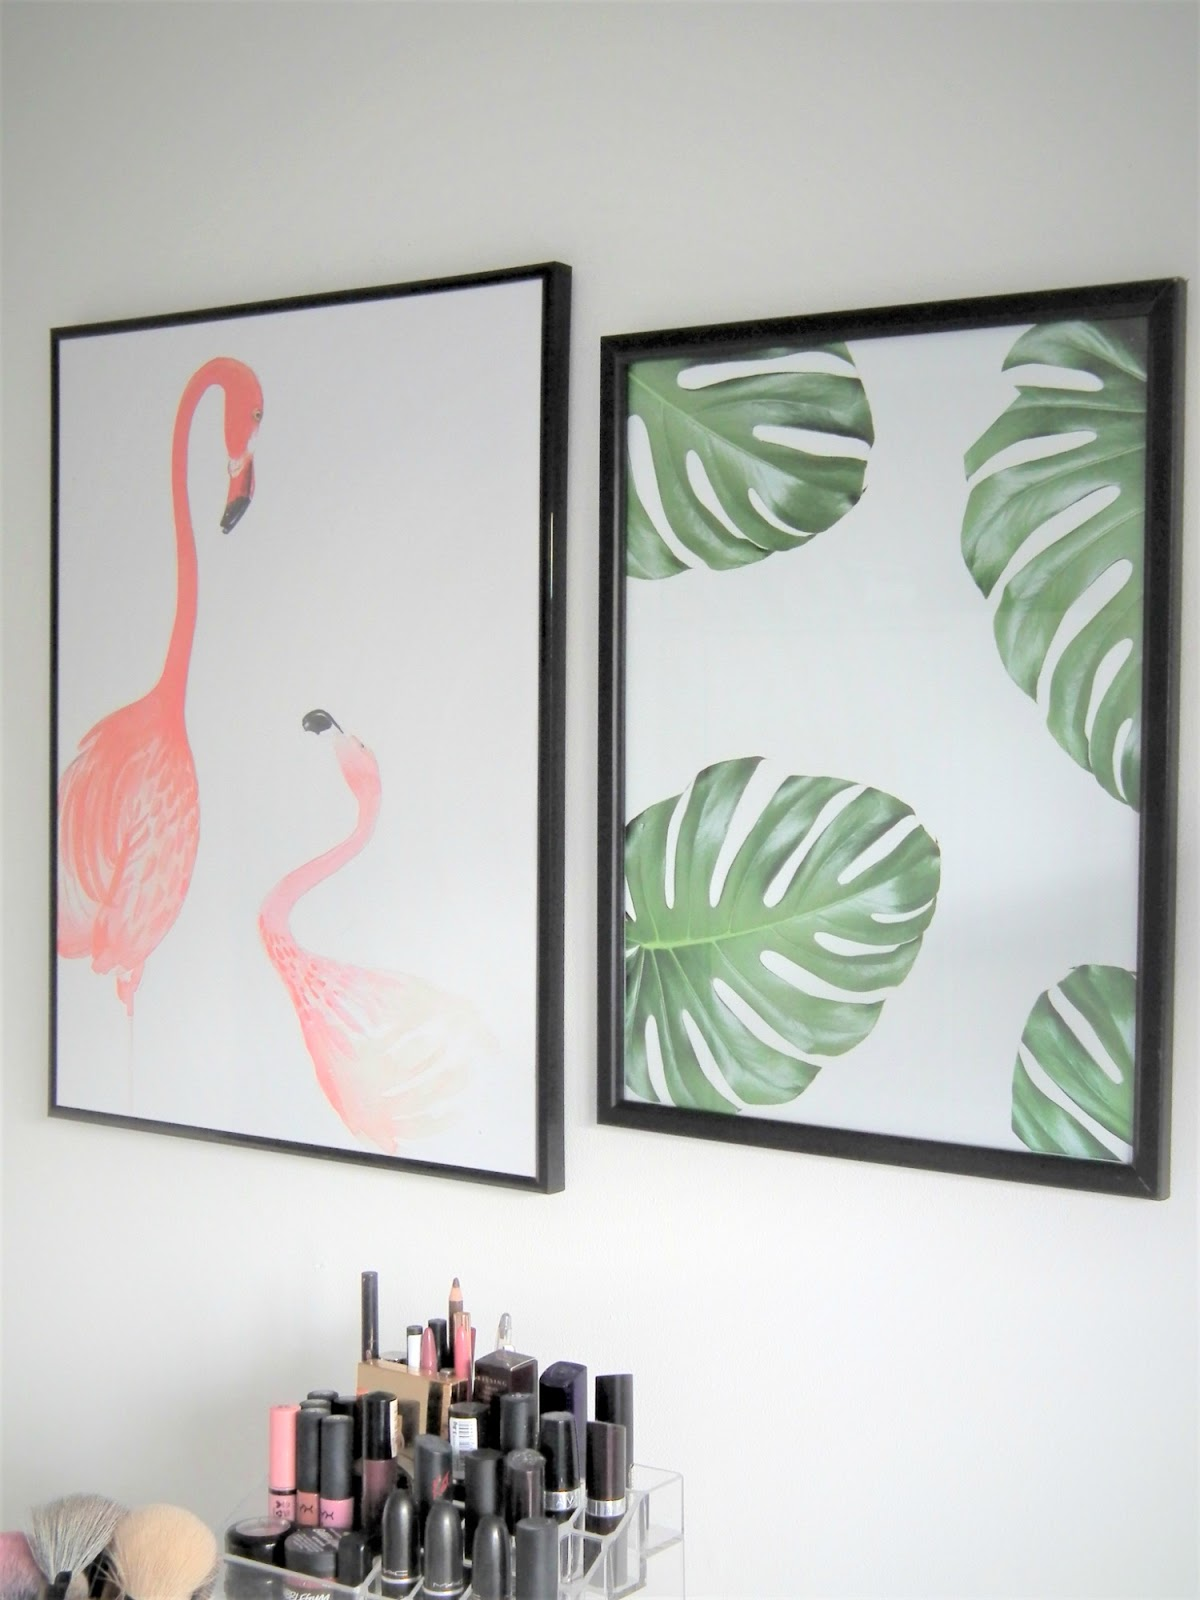 Wall Prints With PosterLounge* & GIVEAWAY!!!!